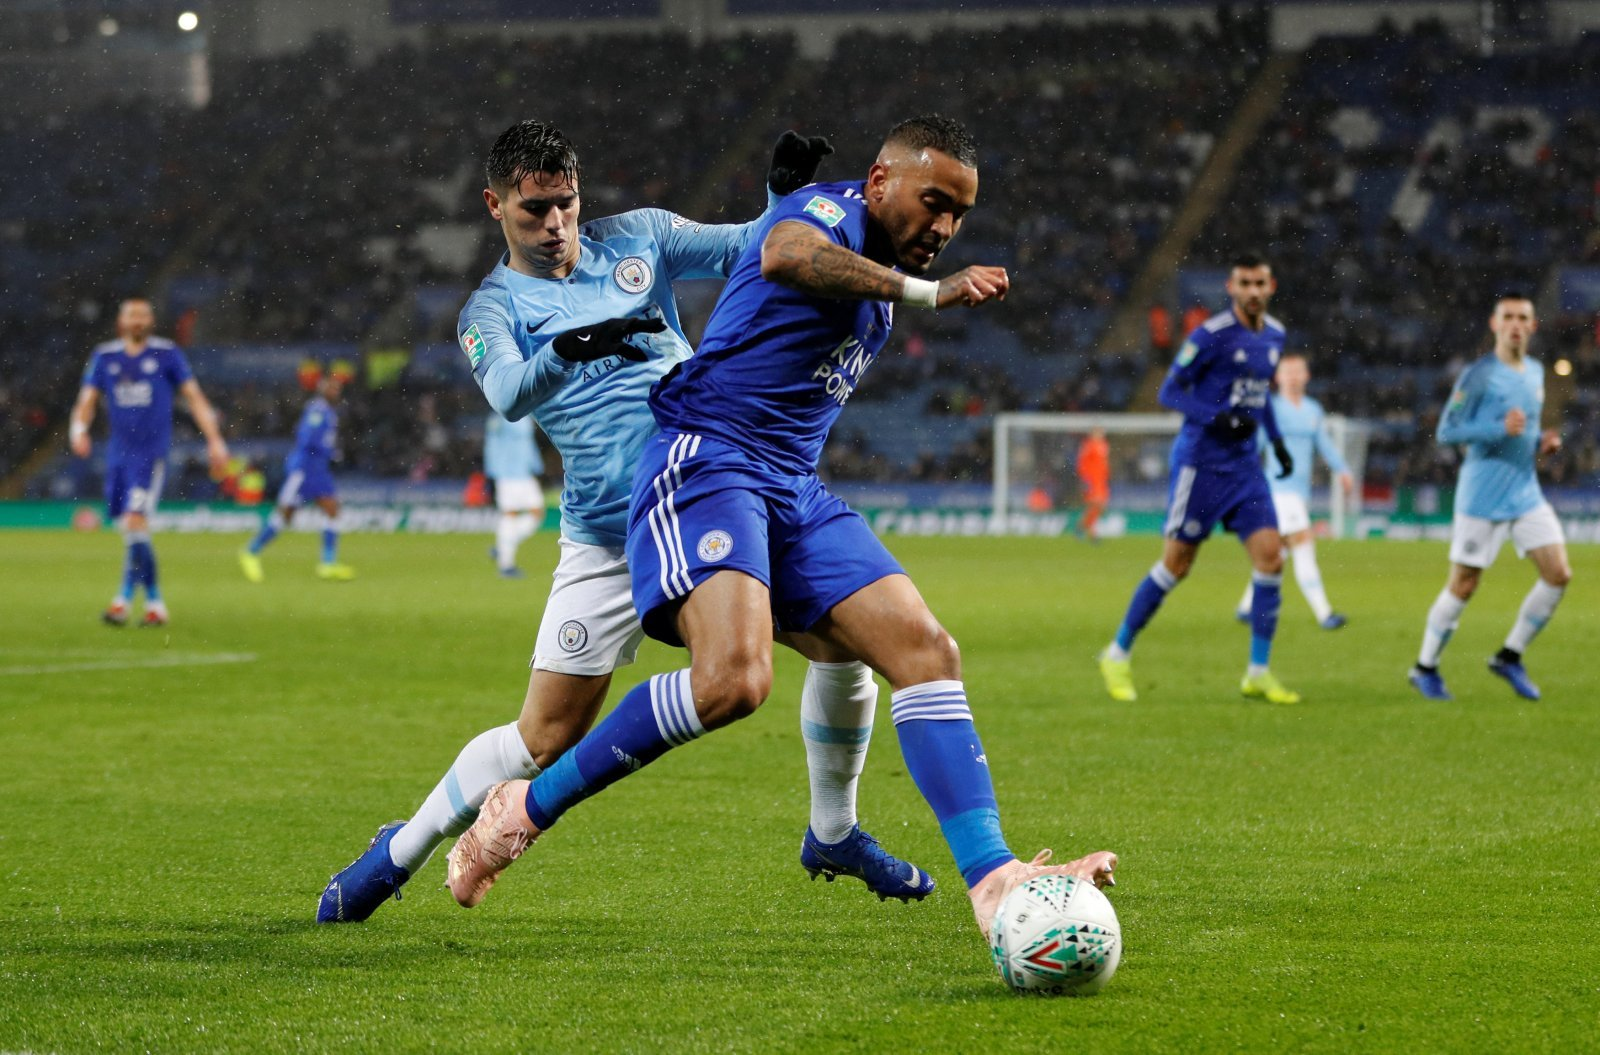 Opinion: Pep Guardiola must convince Brahim Diaz to remain at Manchester City after Leicester showing